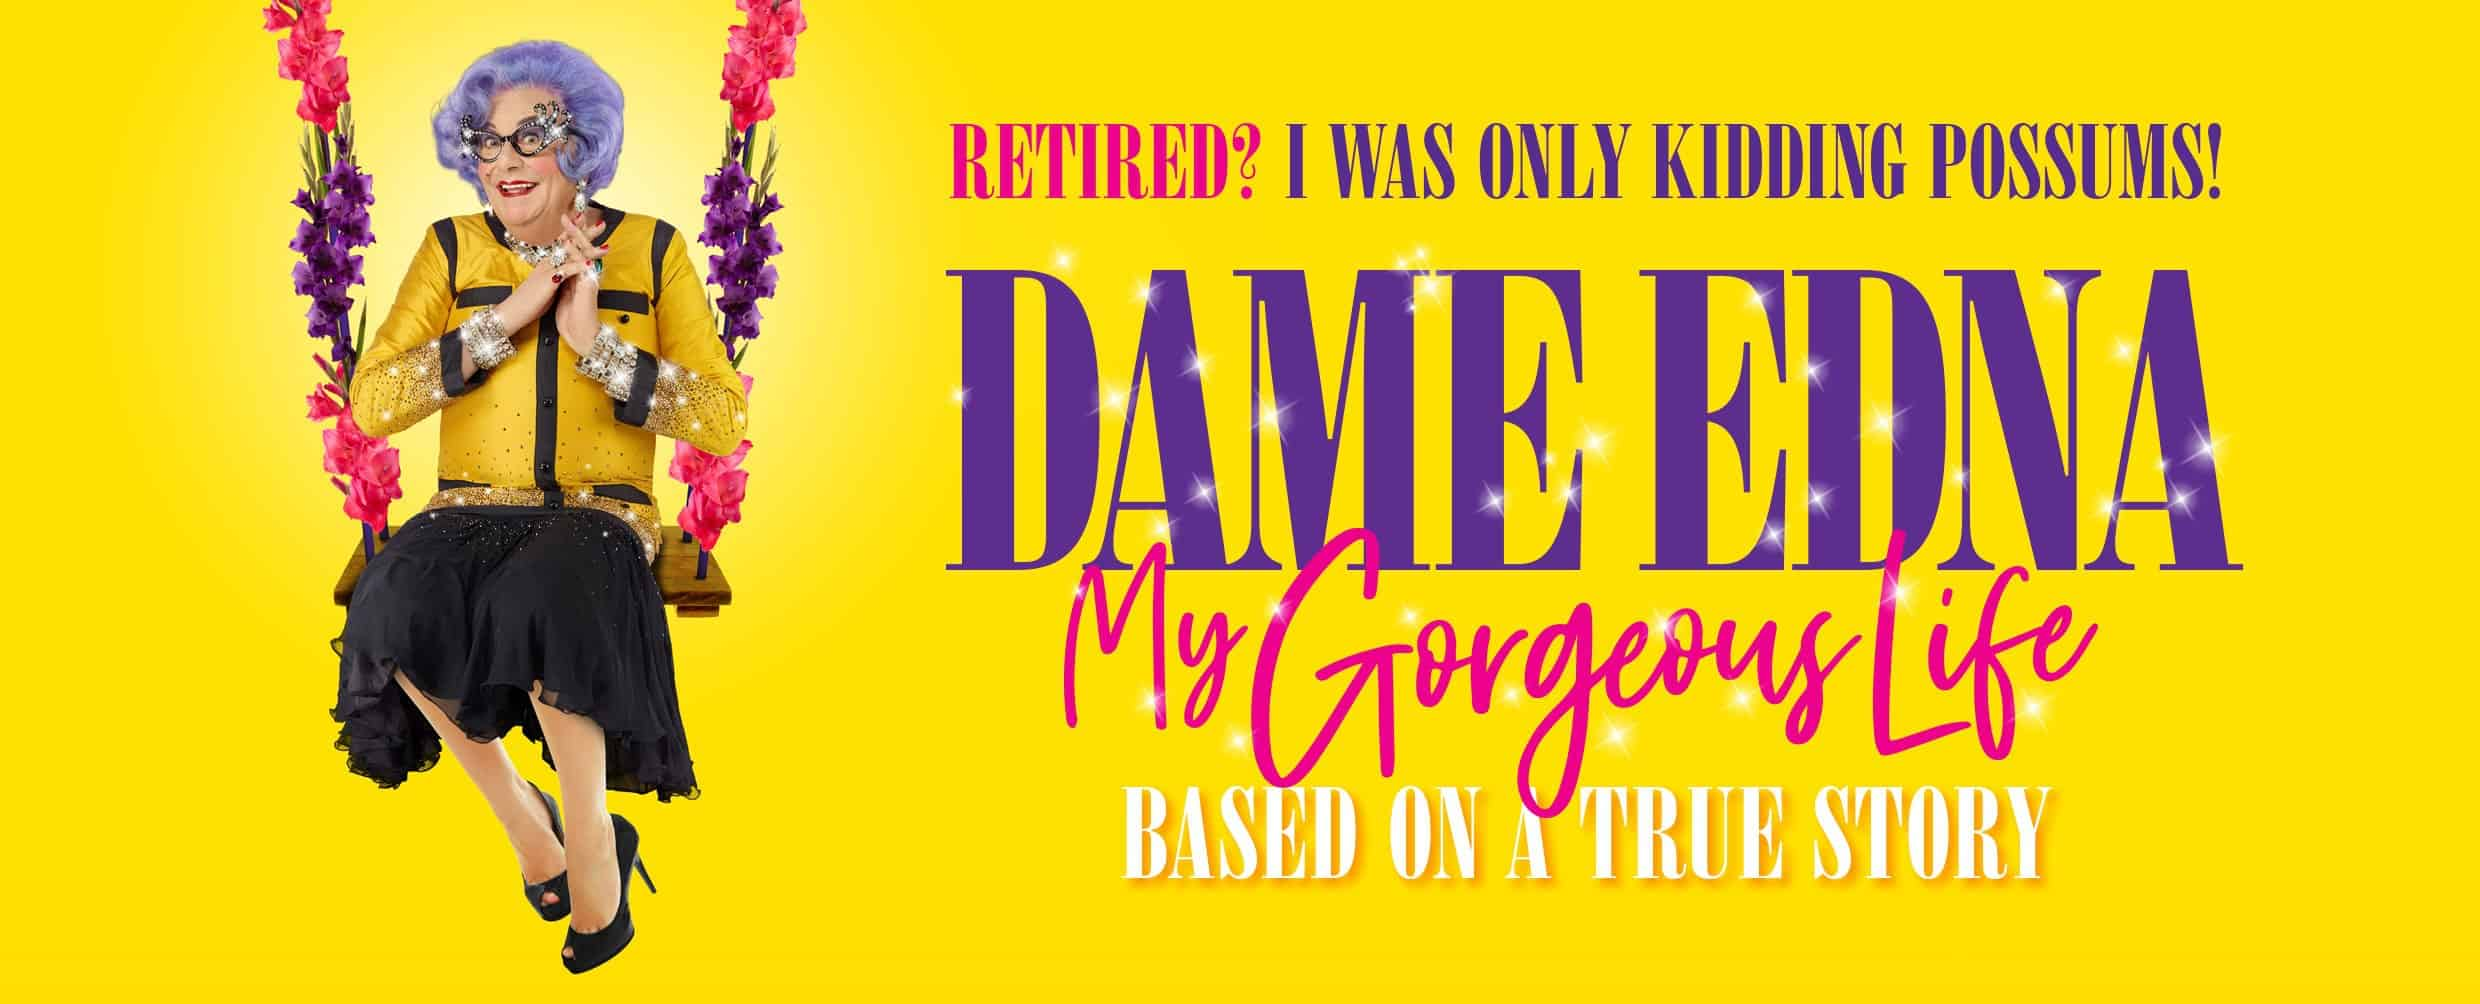 Scene News: Retirement? I Was Only Kidding Possums! Dame Edna My Gorgeous Life Tour Announced